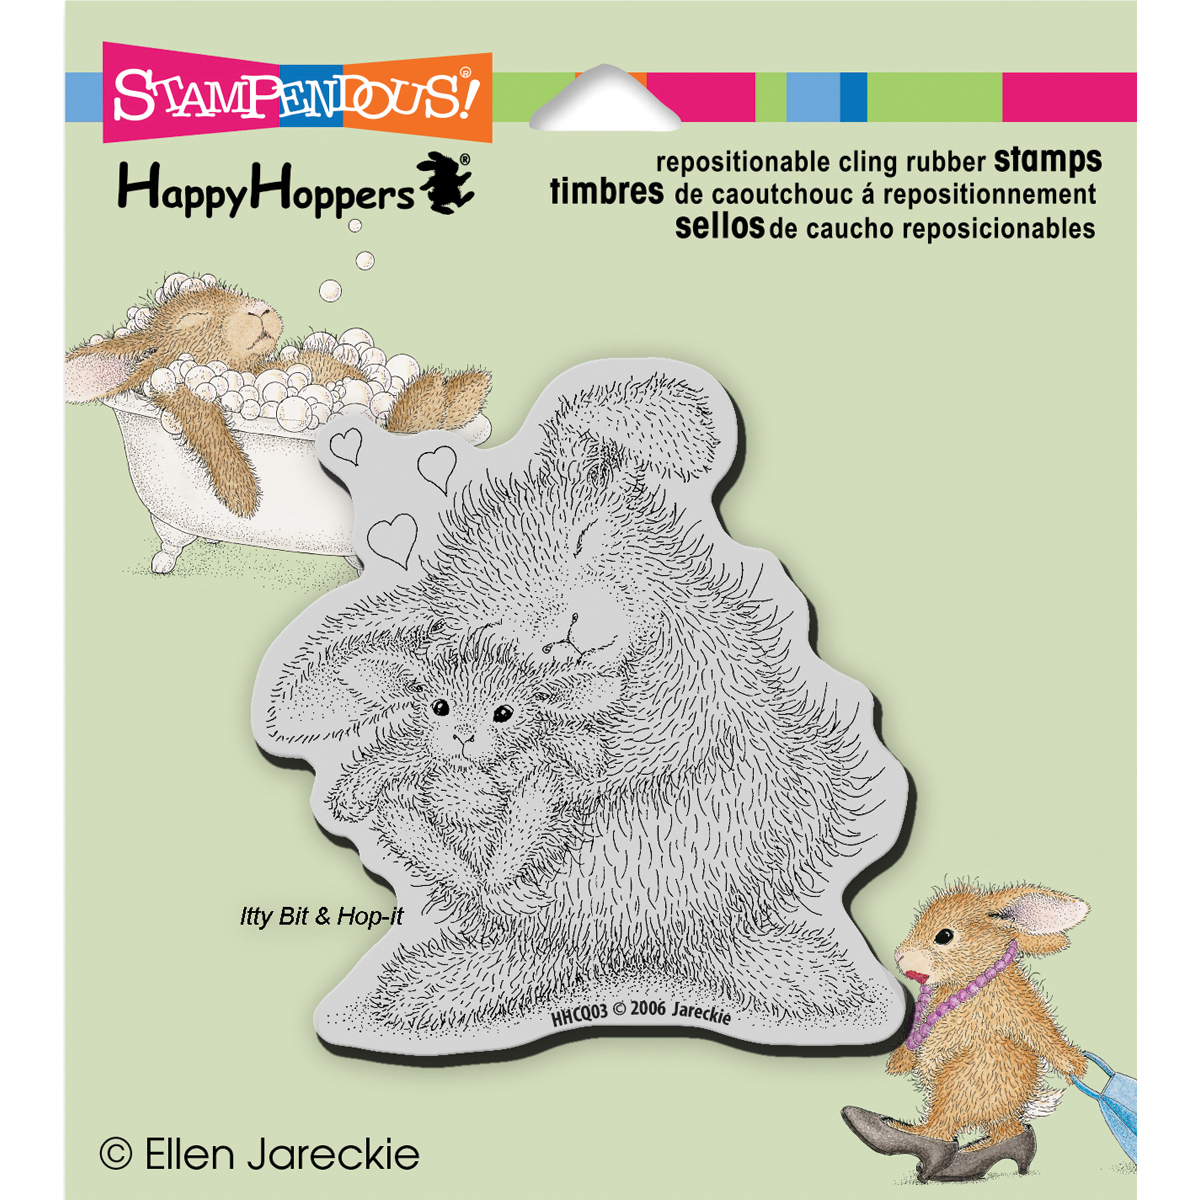 Stampendous HappyHoppers Cling Stamp Bunny Luv